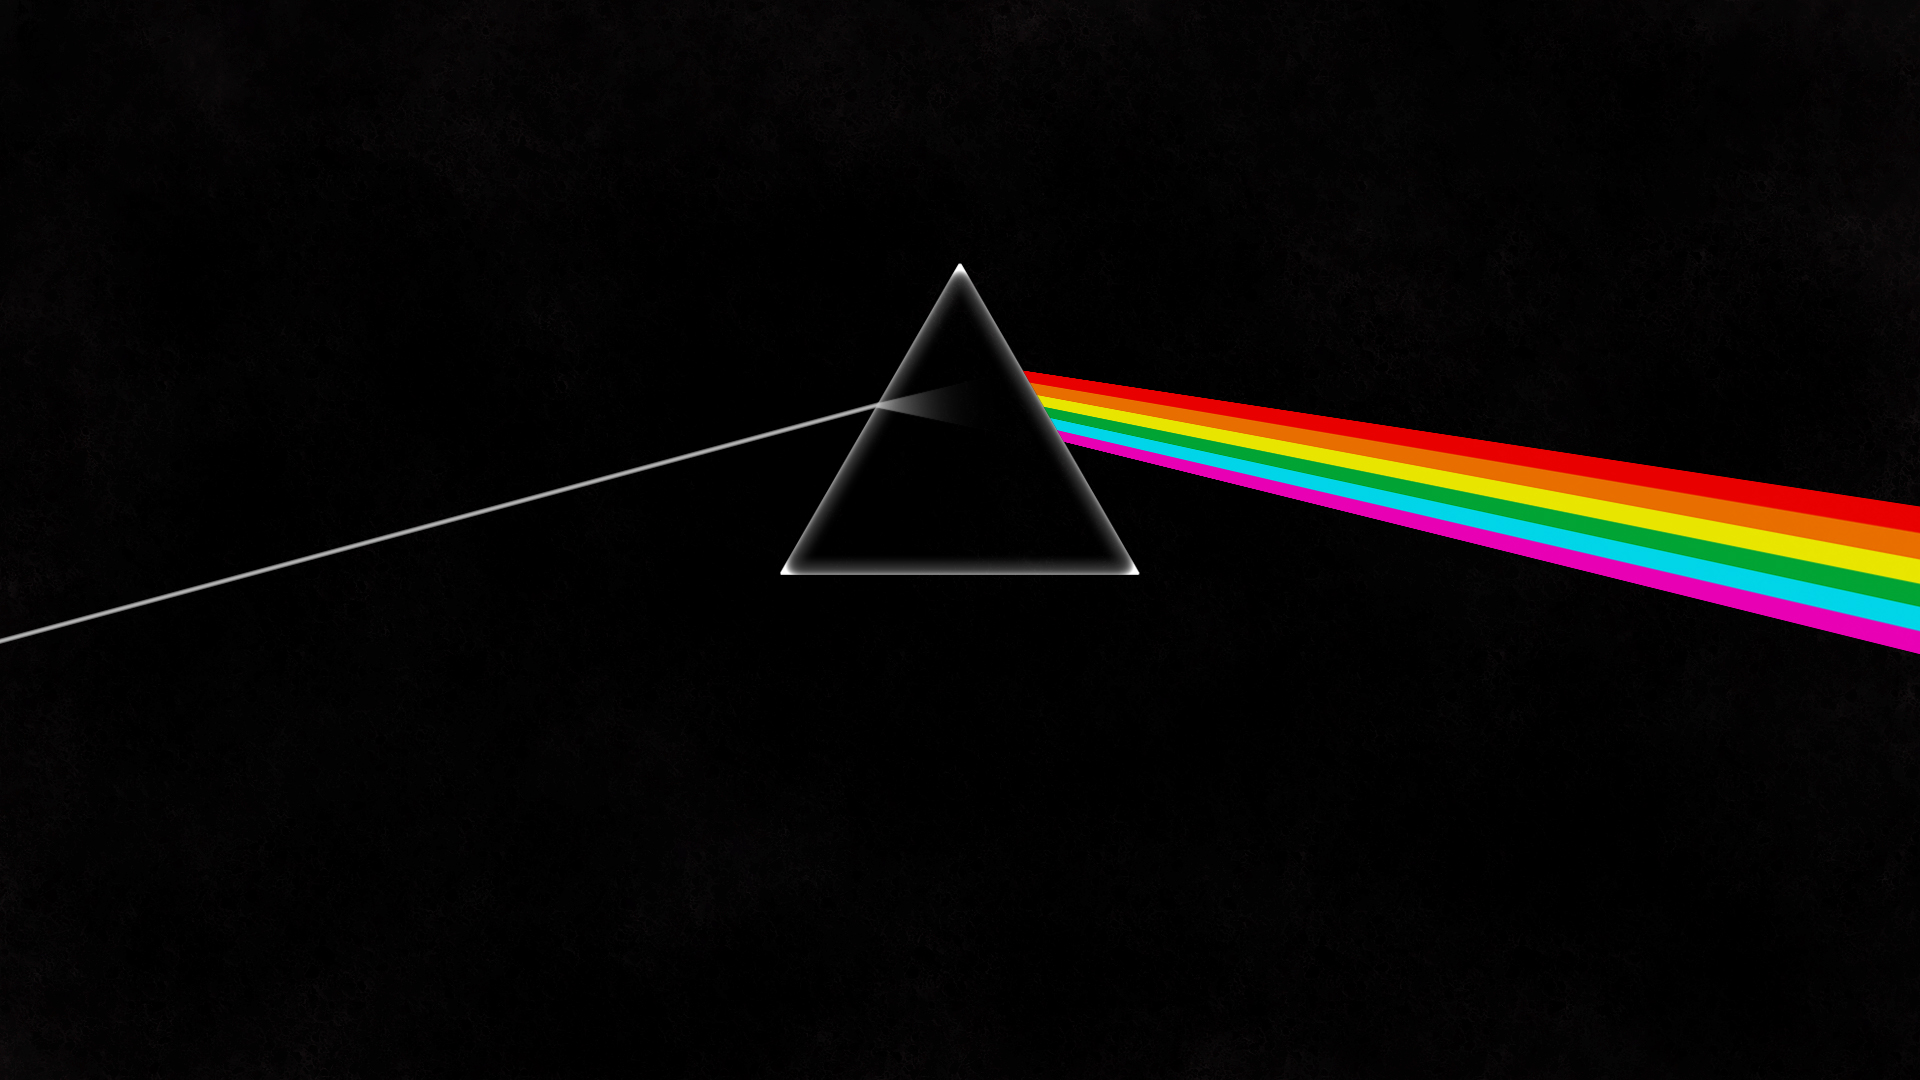 2k Wallpapers For Iphone X Pink Floyd Hd Wallpaper Background Image 1920x1080